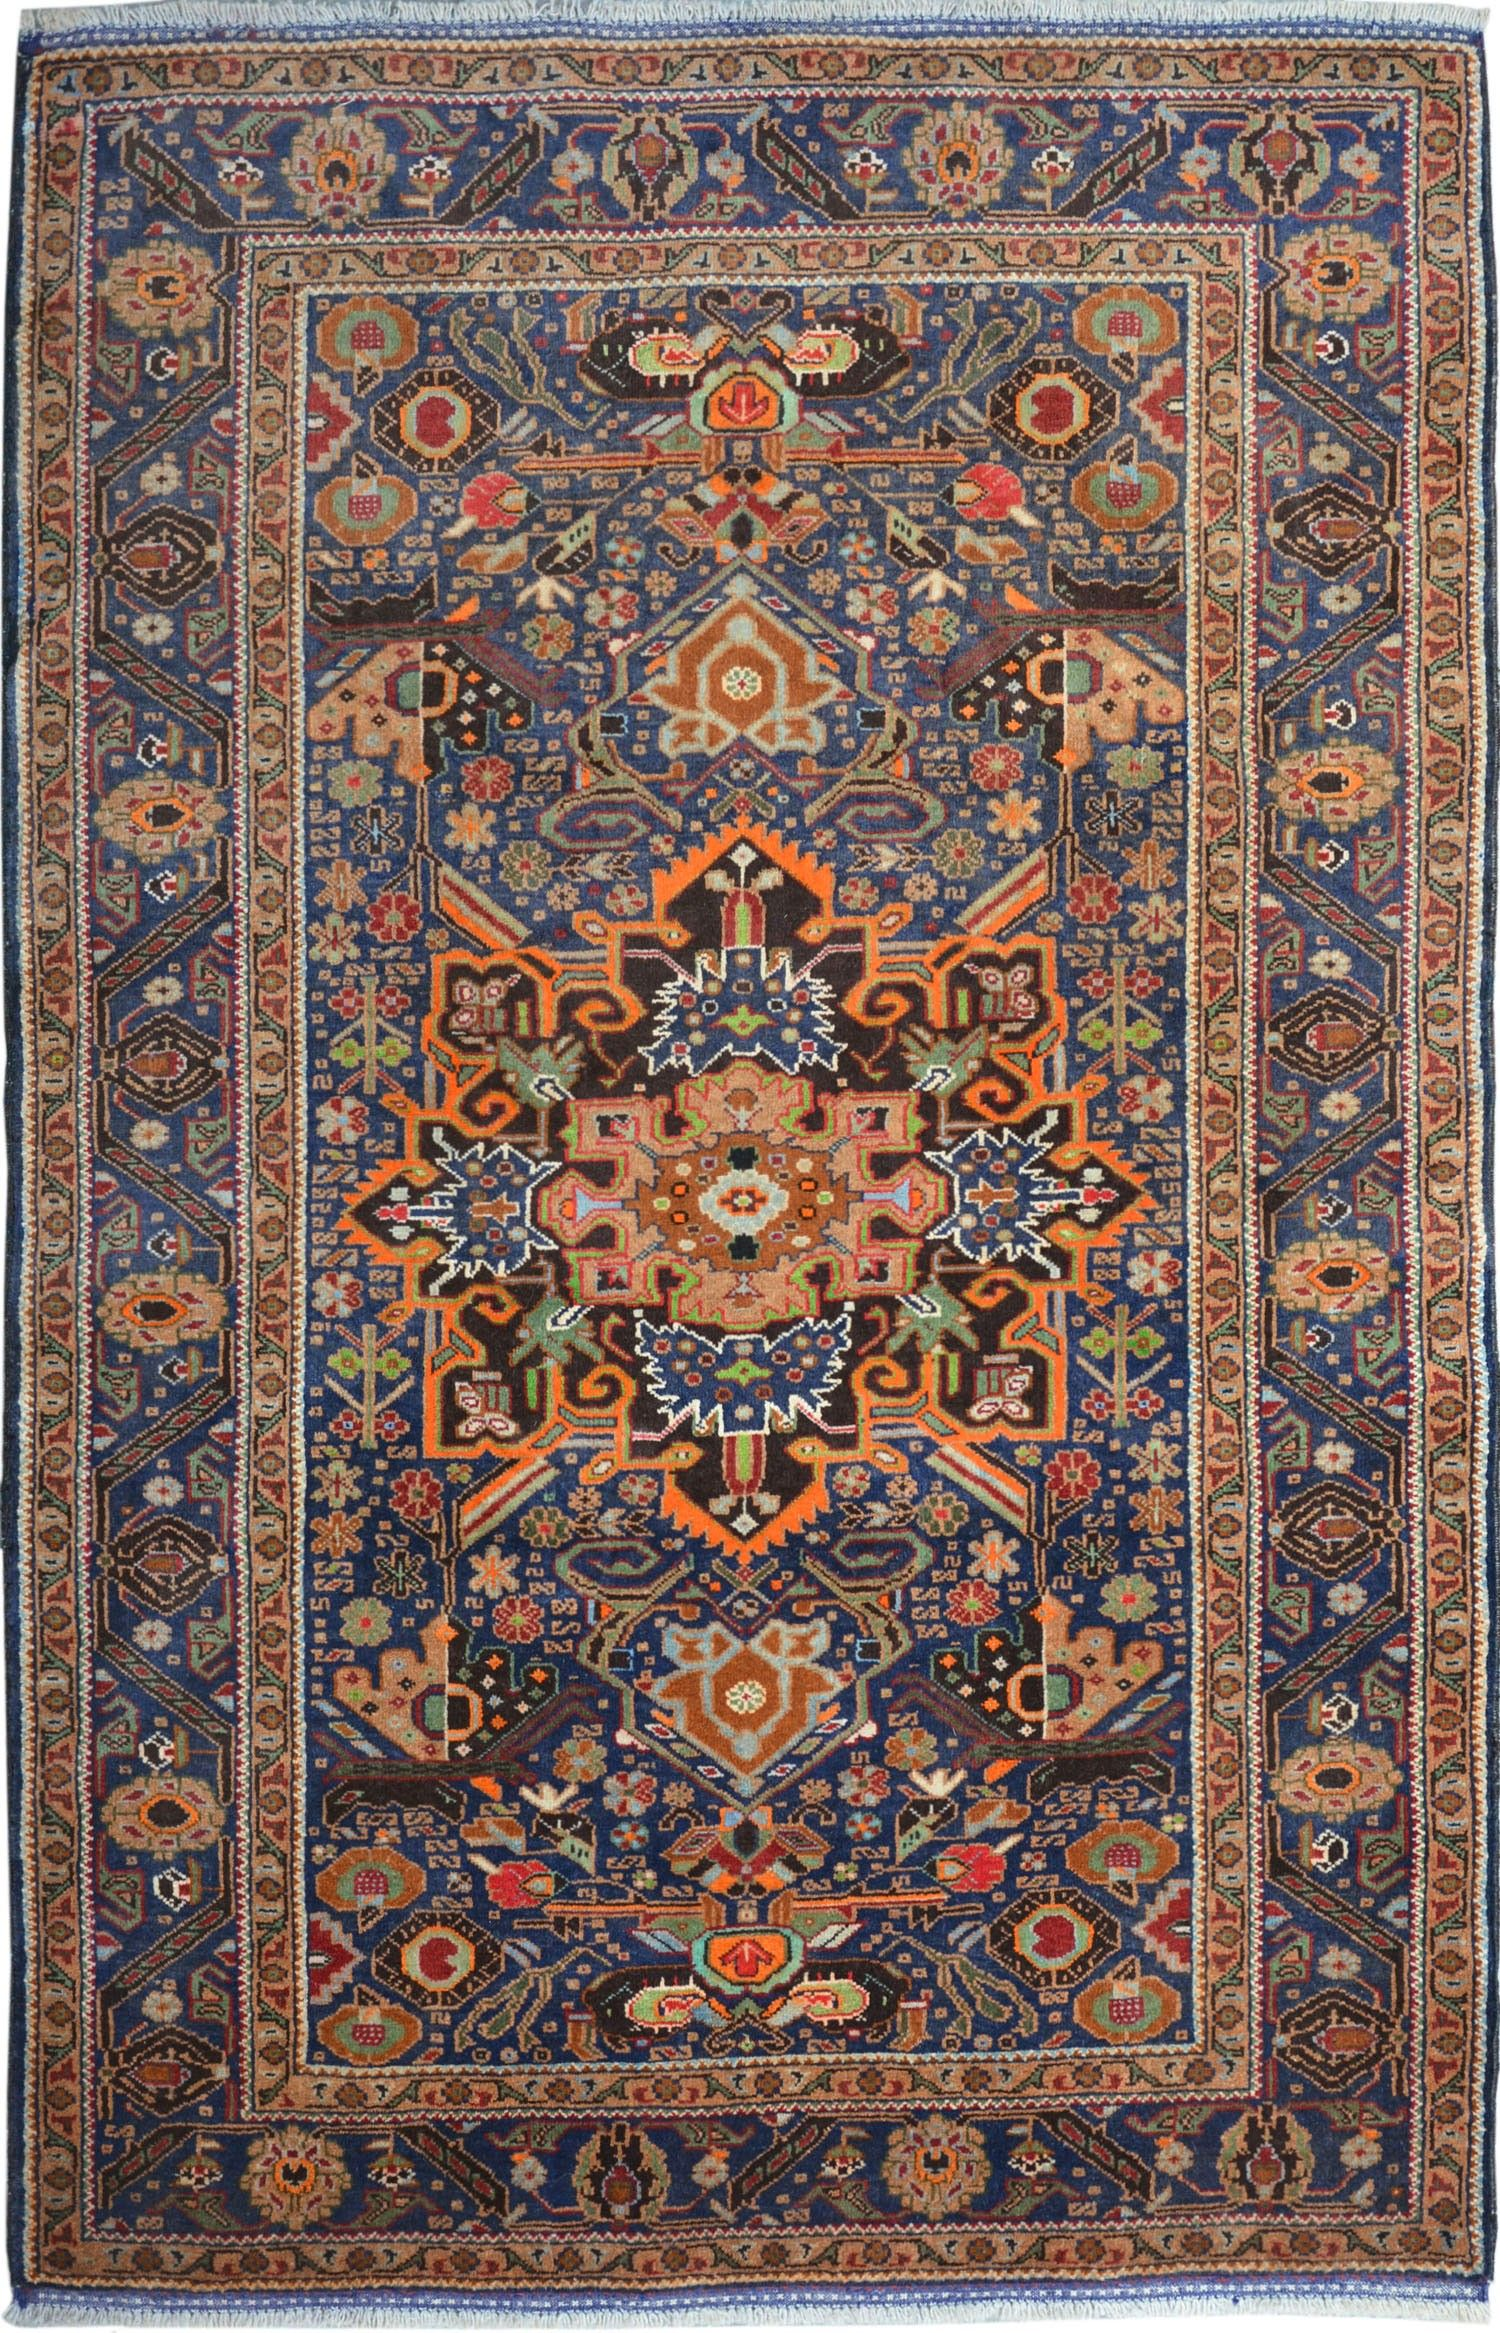 Pin By Neville Galea On Home Decor Antique Persian Carpet Rugs Round Carpets